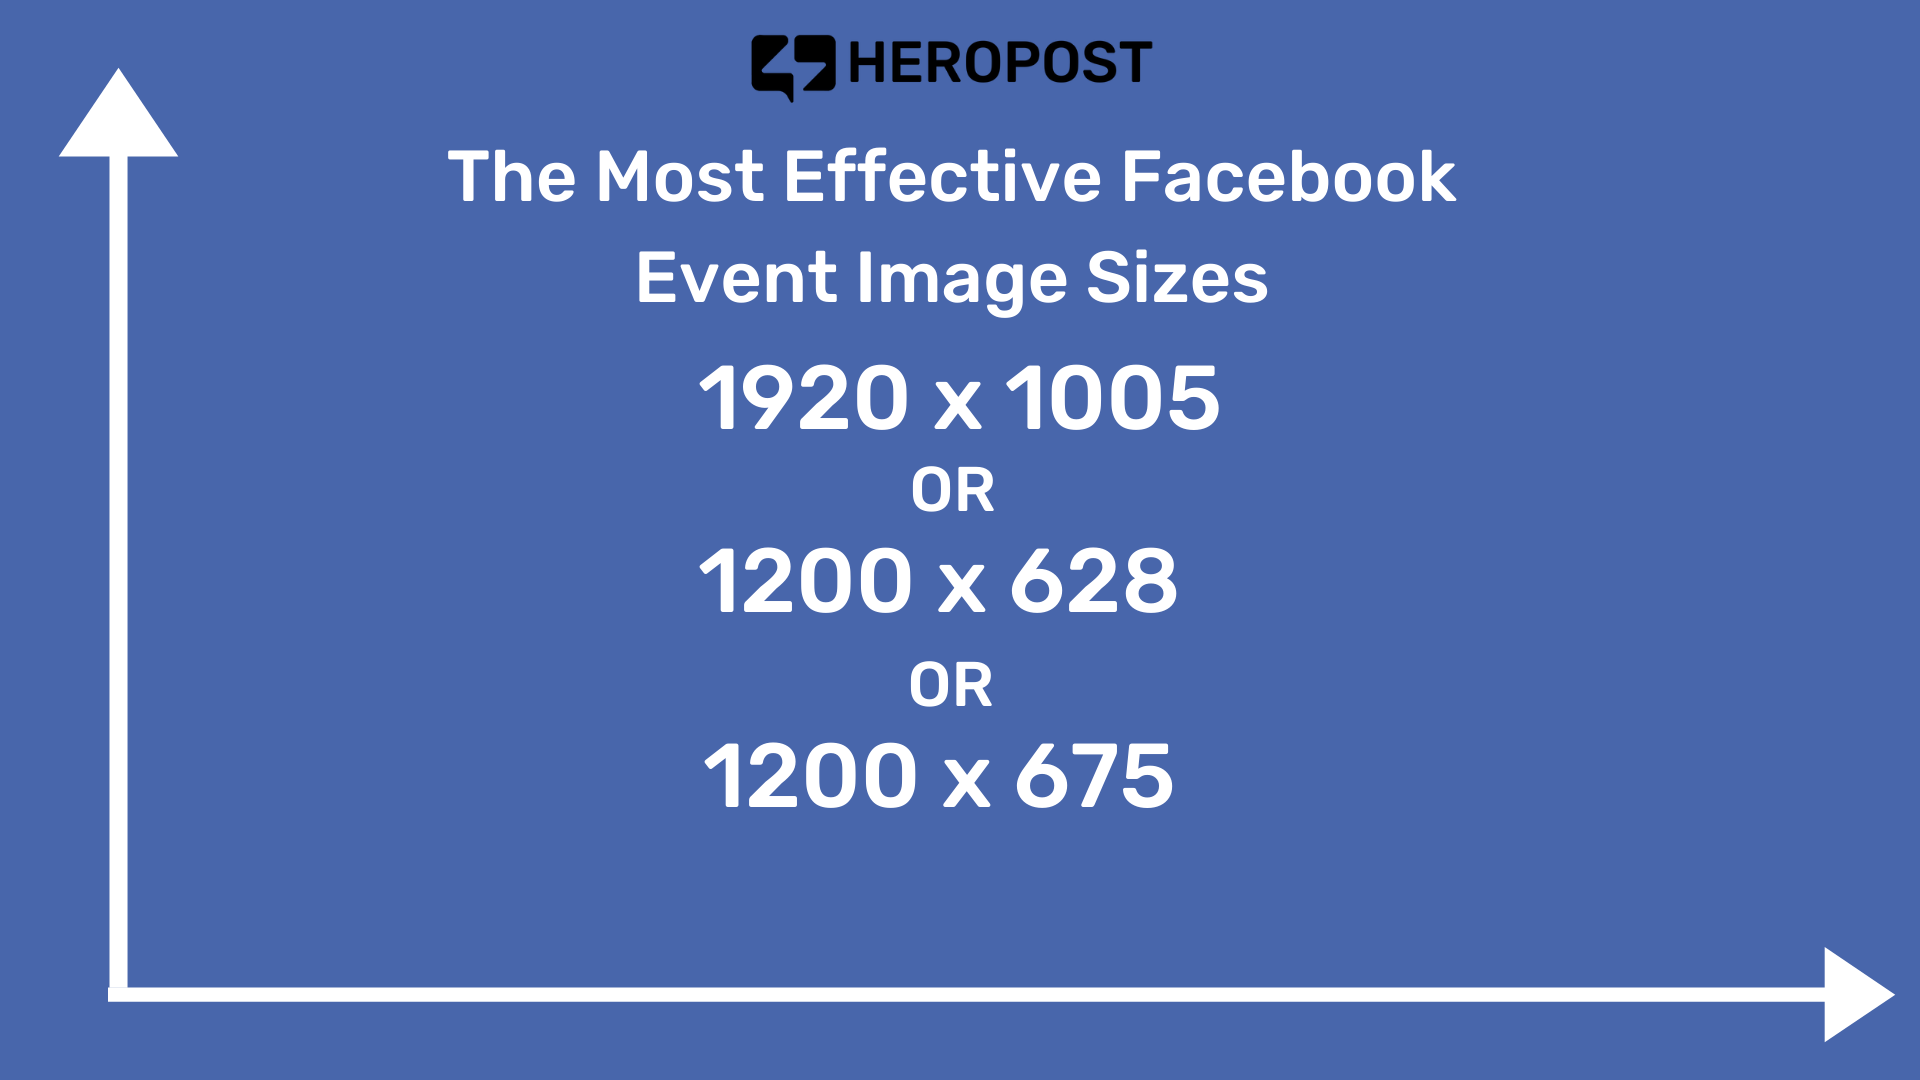 The Most Effective Facebook Event Image Sizes